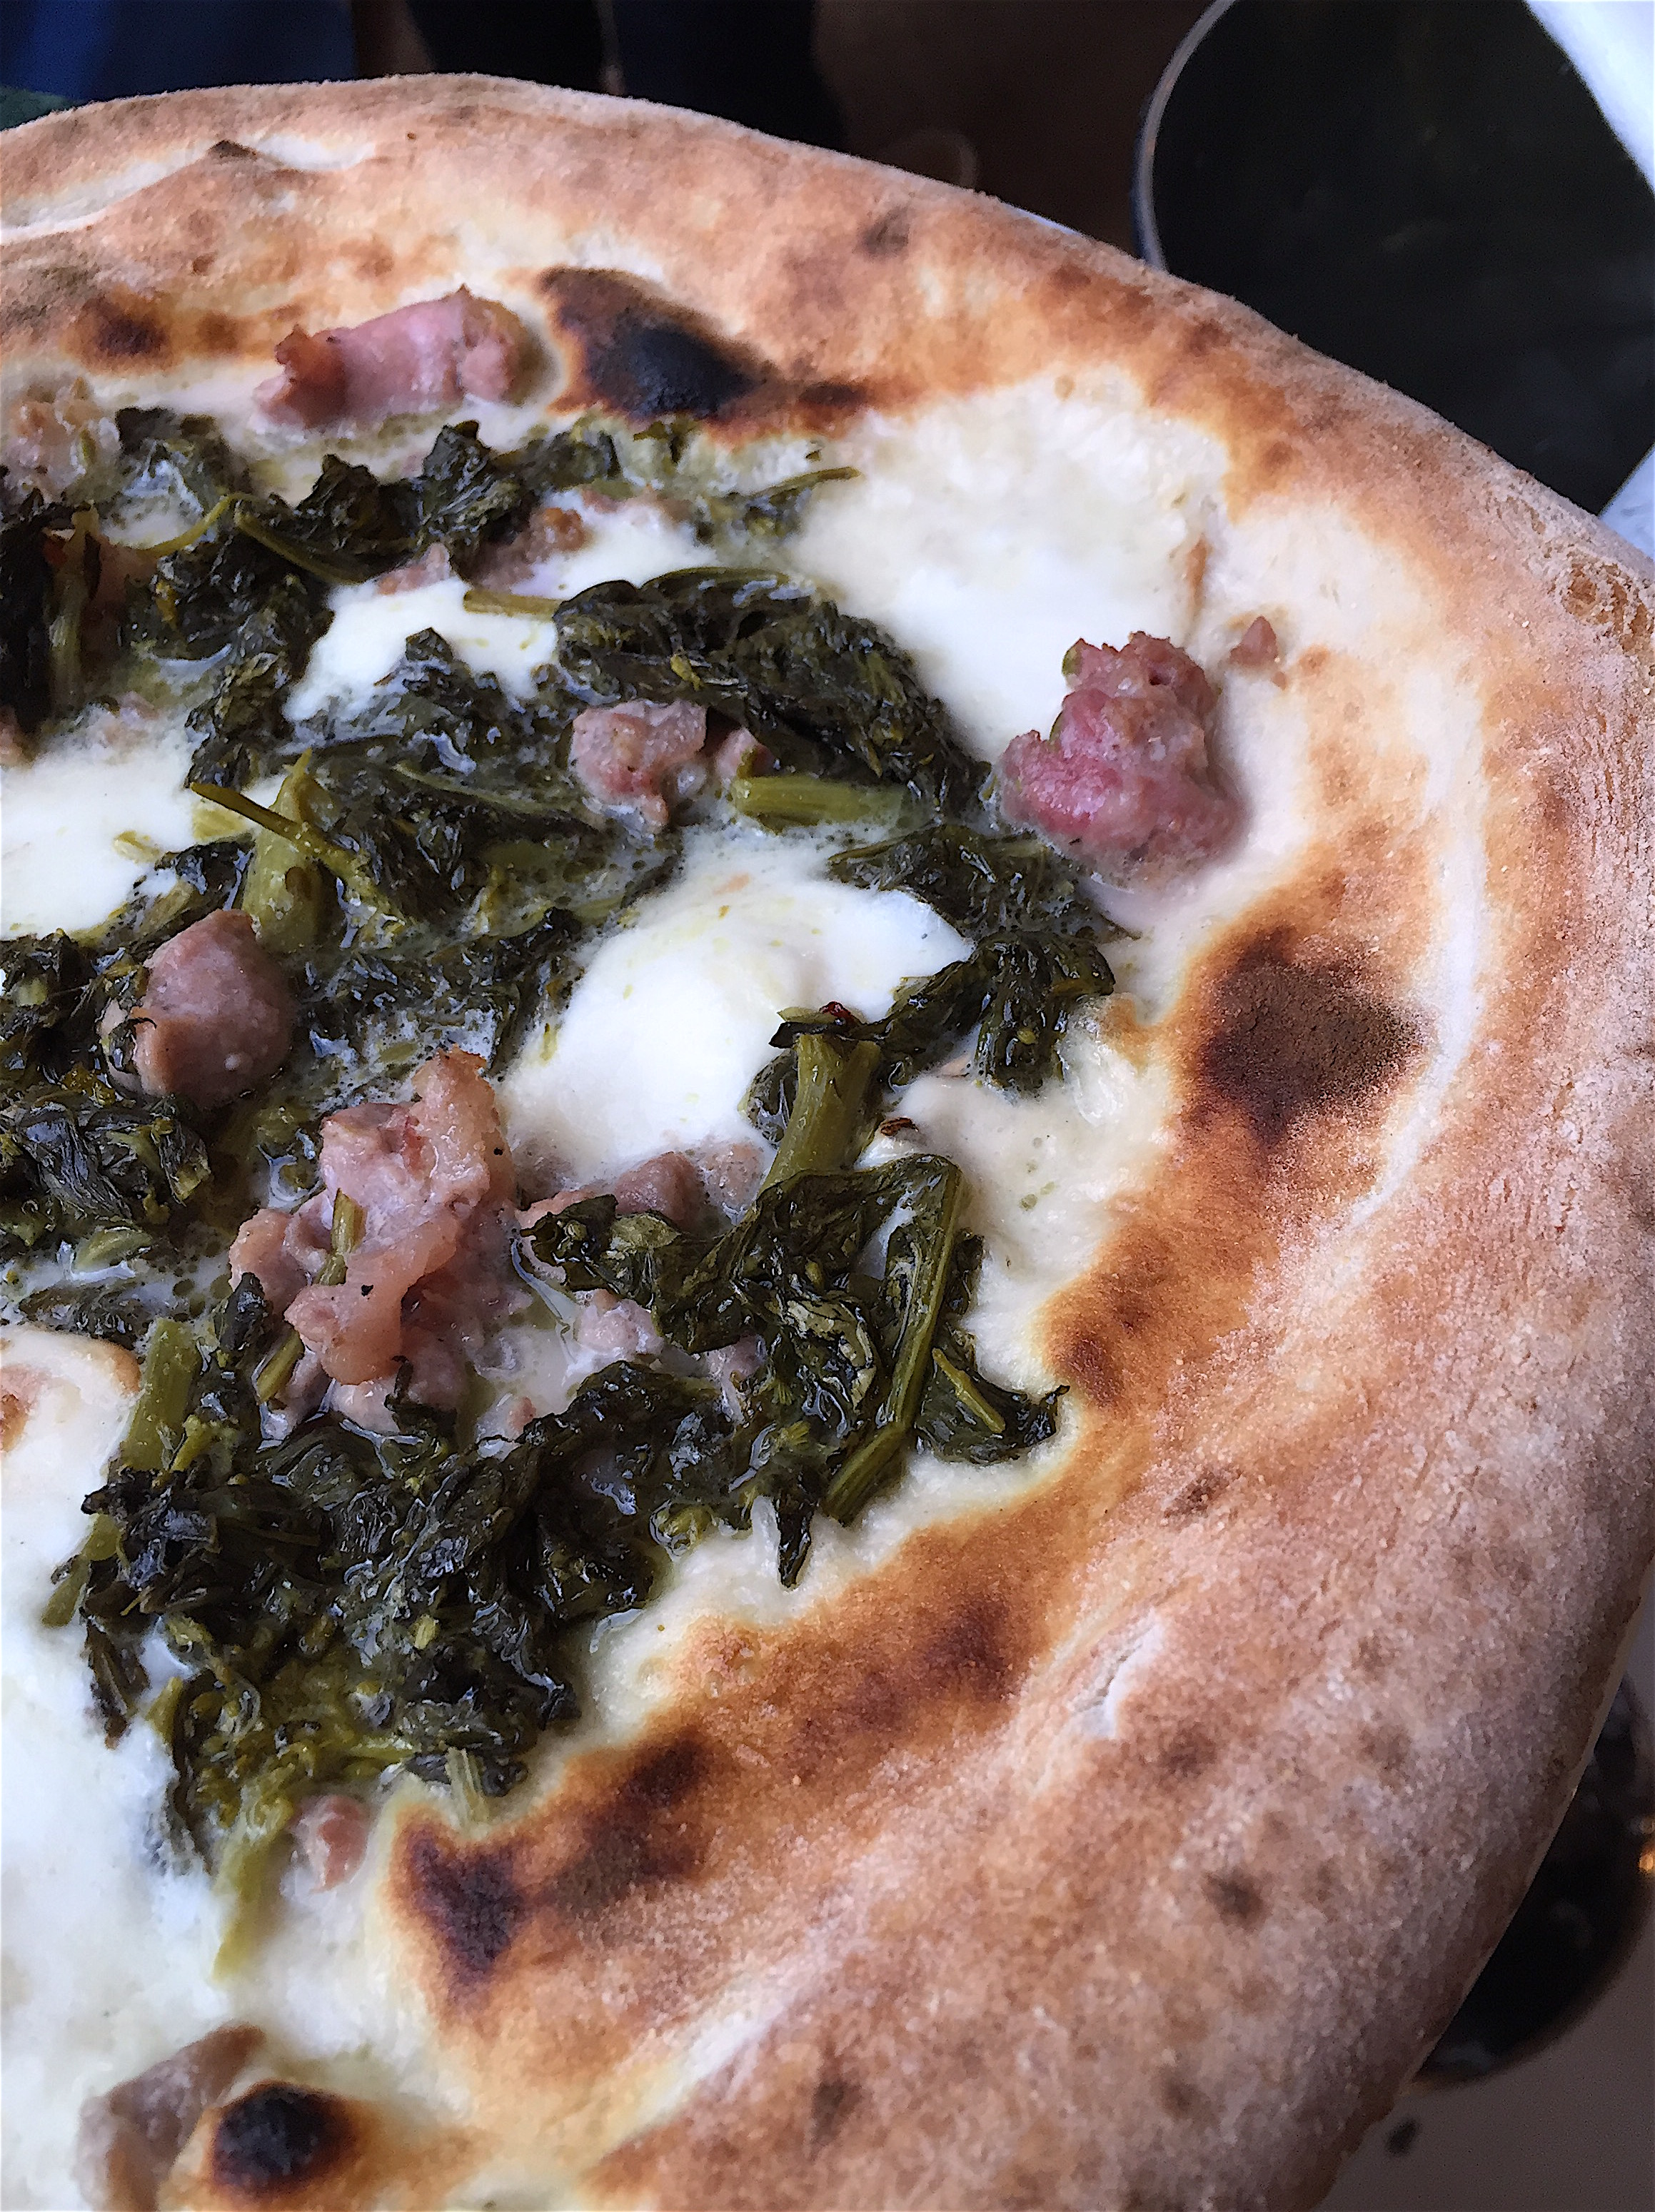 Daroco - Pizza with broccoli rabe and sausage @AlexanderLobrano